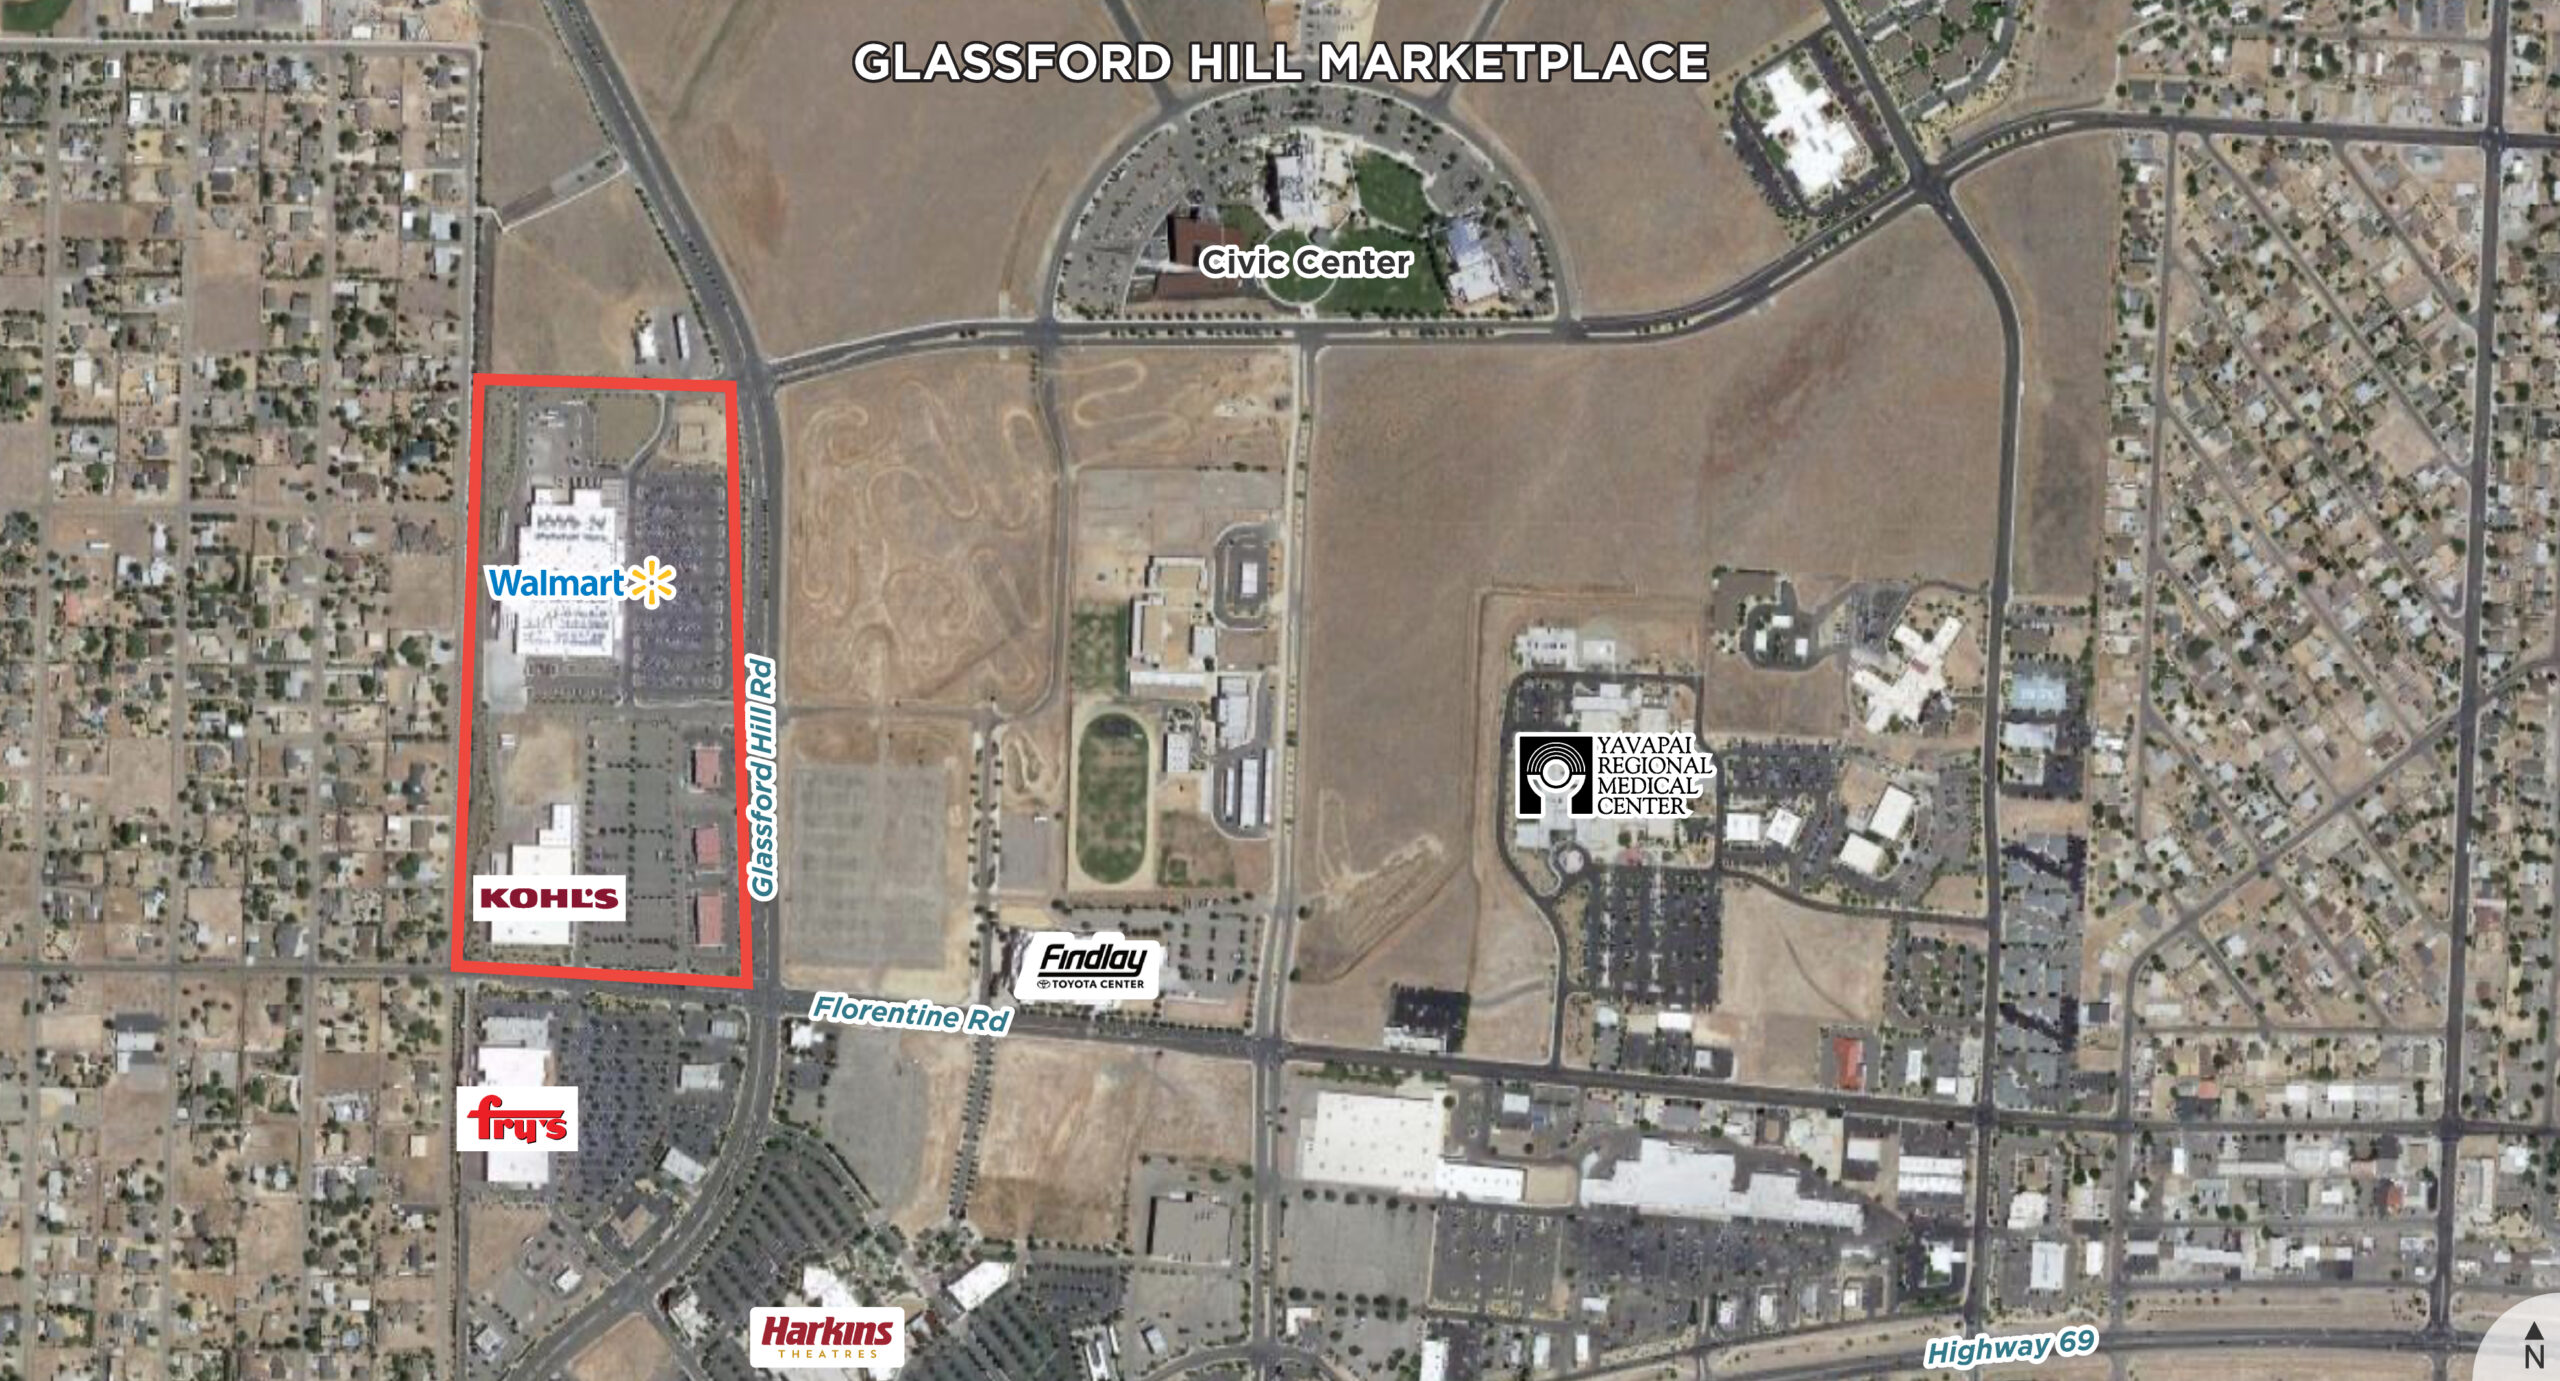 Glassford Hill Marketplace Retail C | Retail D